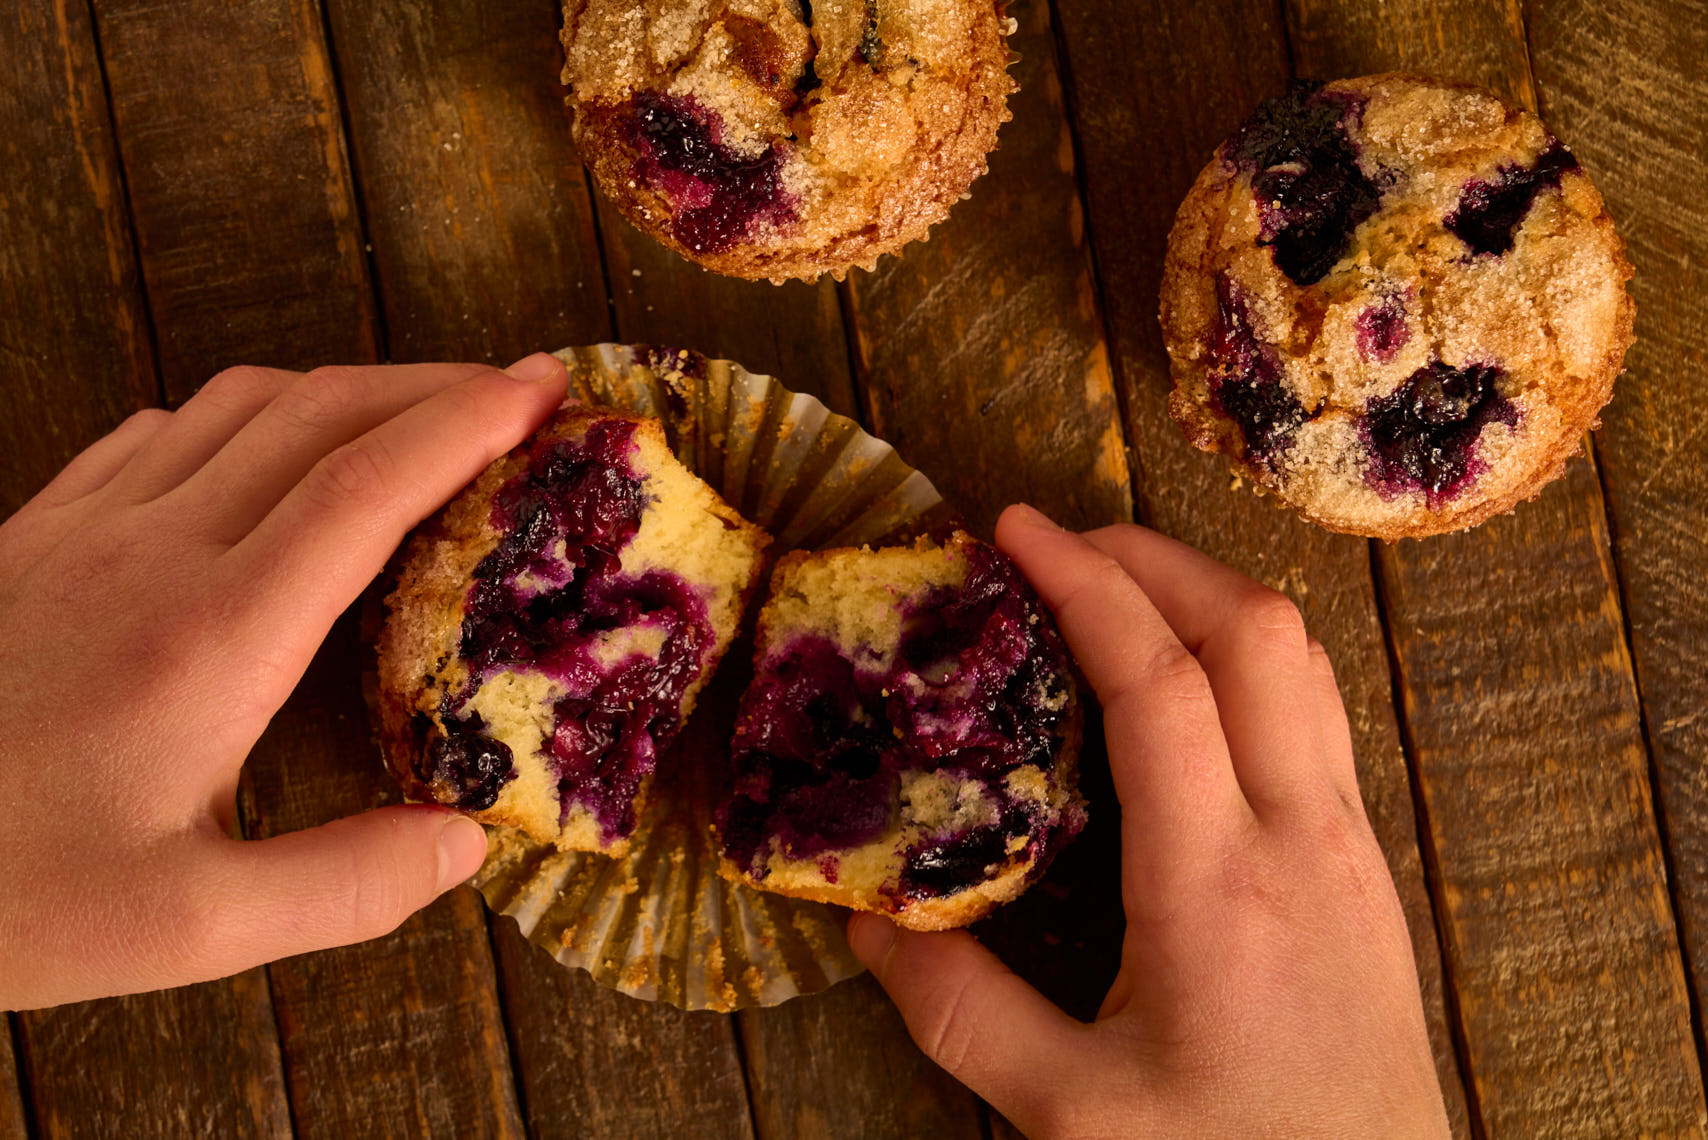 Blueberry Muffins - Food Photographer Philadelphia, Lehigh Valley, PA Region